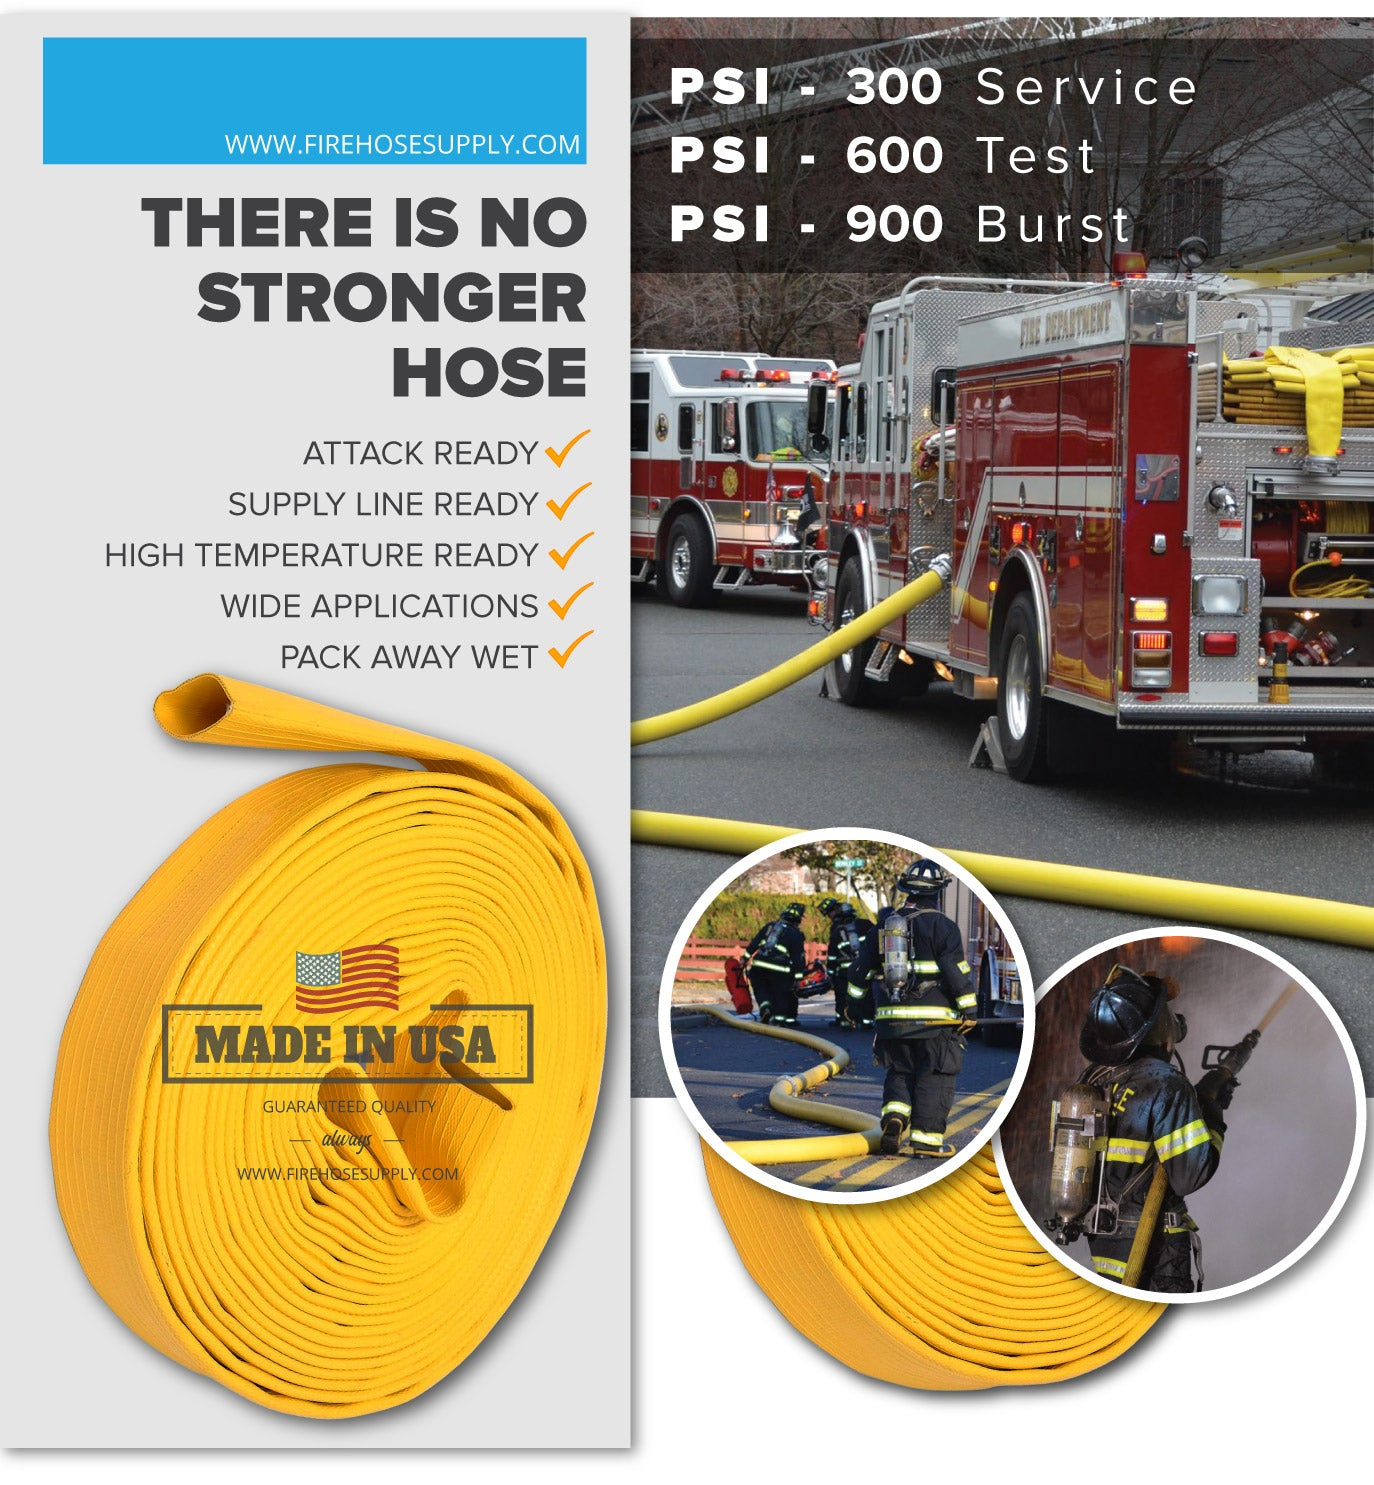 3 Inch Rubber Fire Hose Material Only Supply And Attack Ready Firefighter Yellow 600 PSI Test